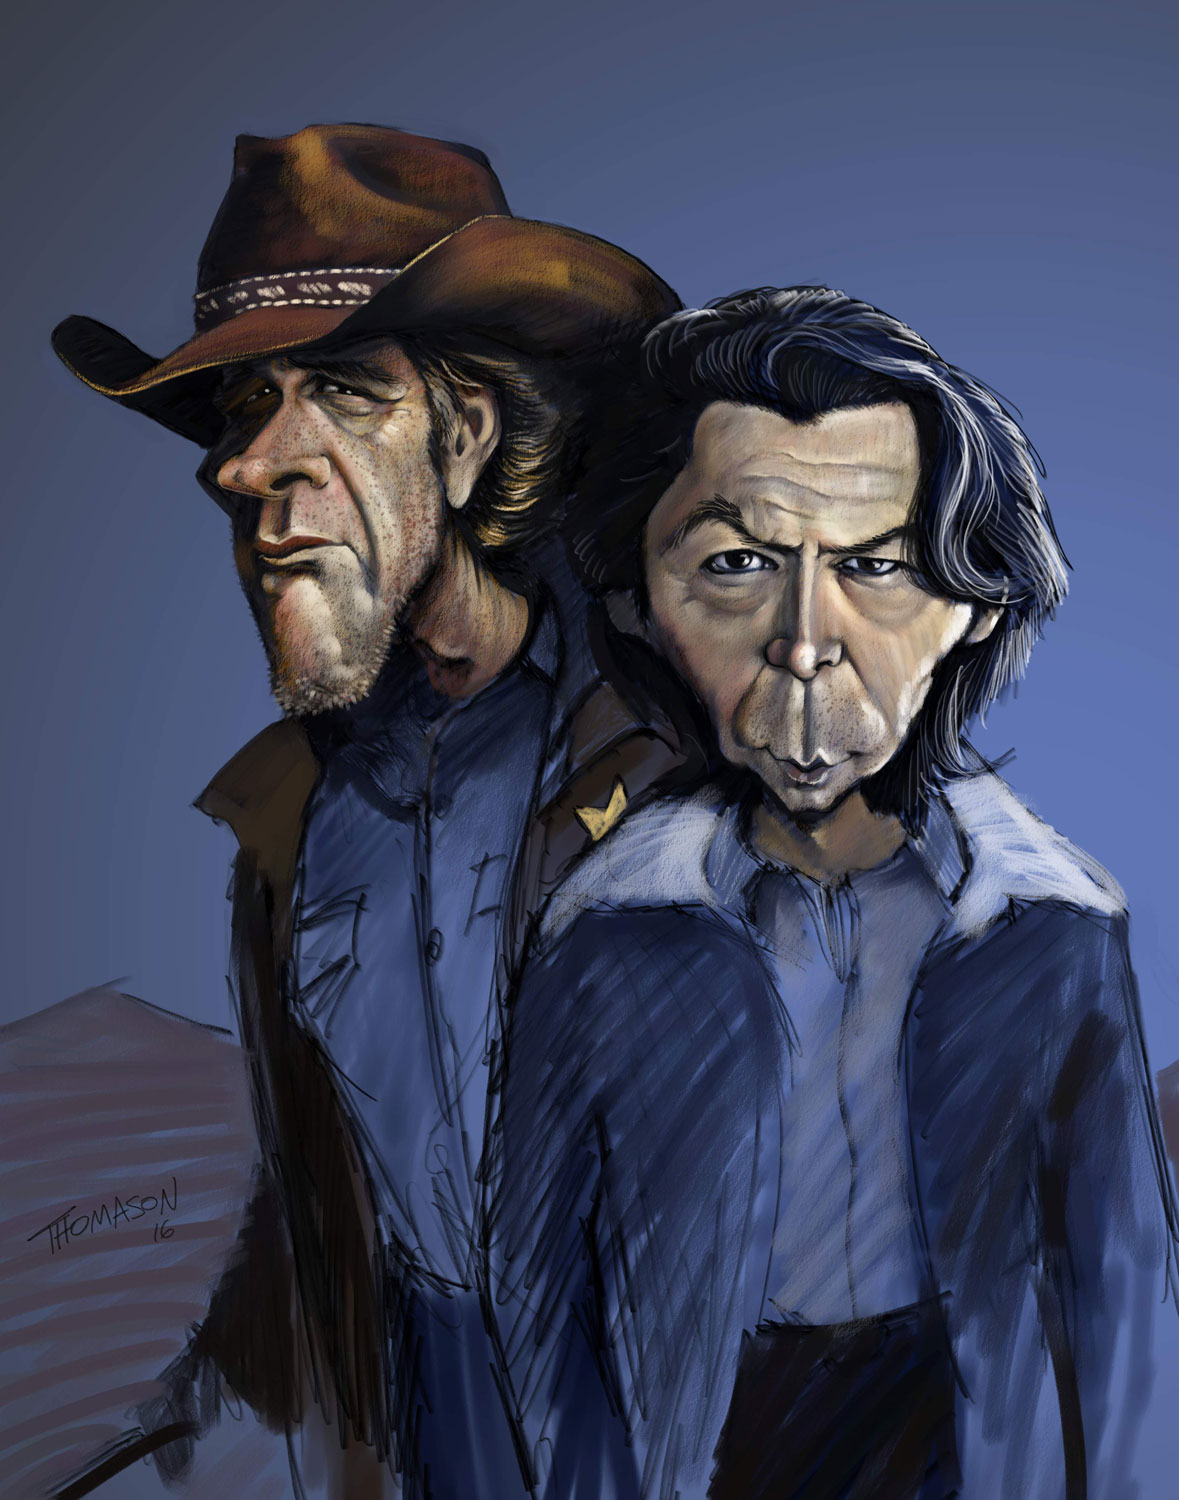 caricature of Longmire and Standing Bear